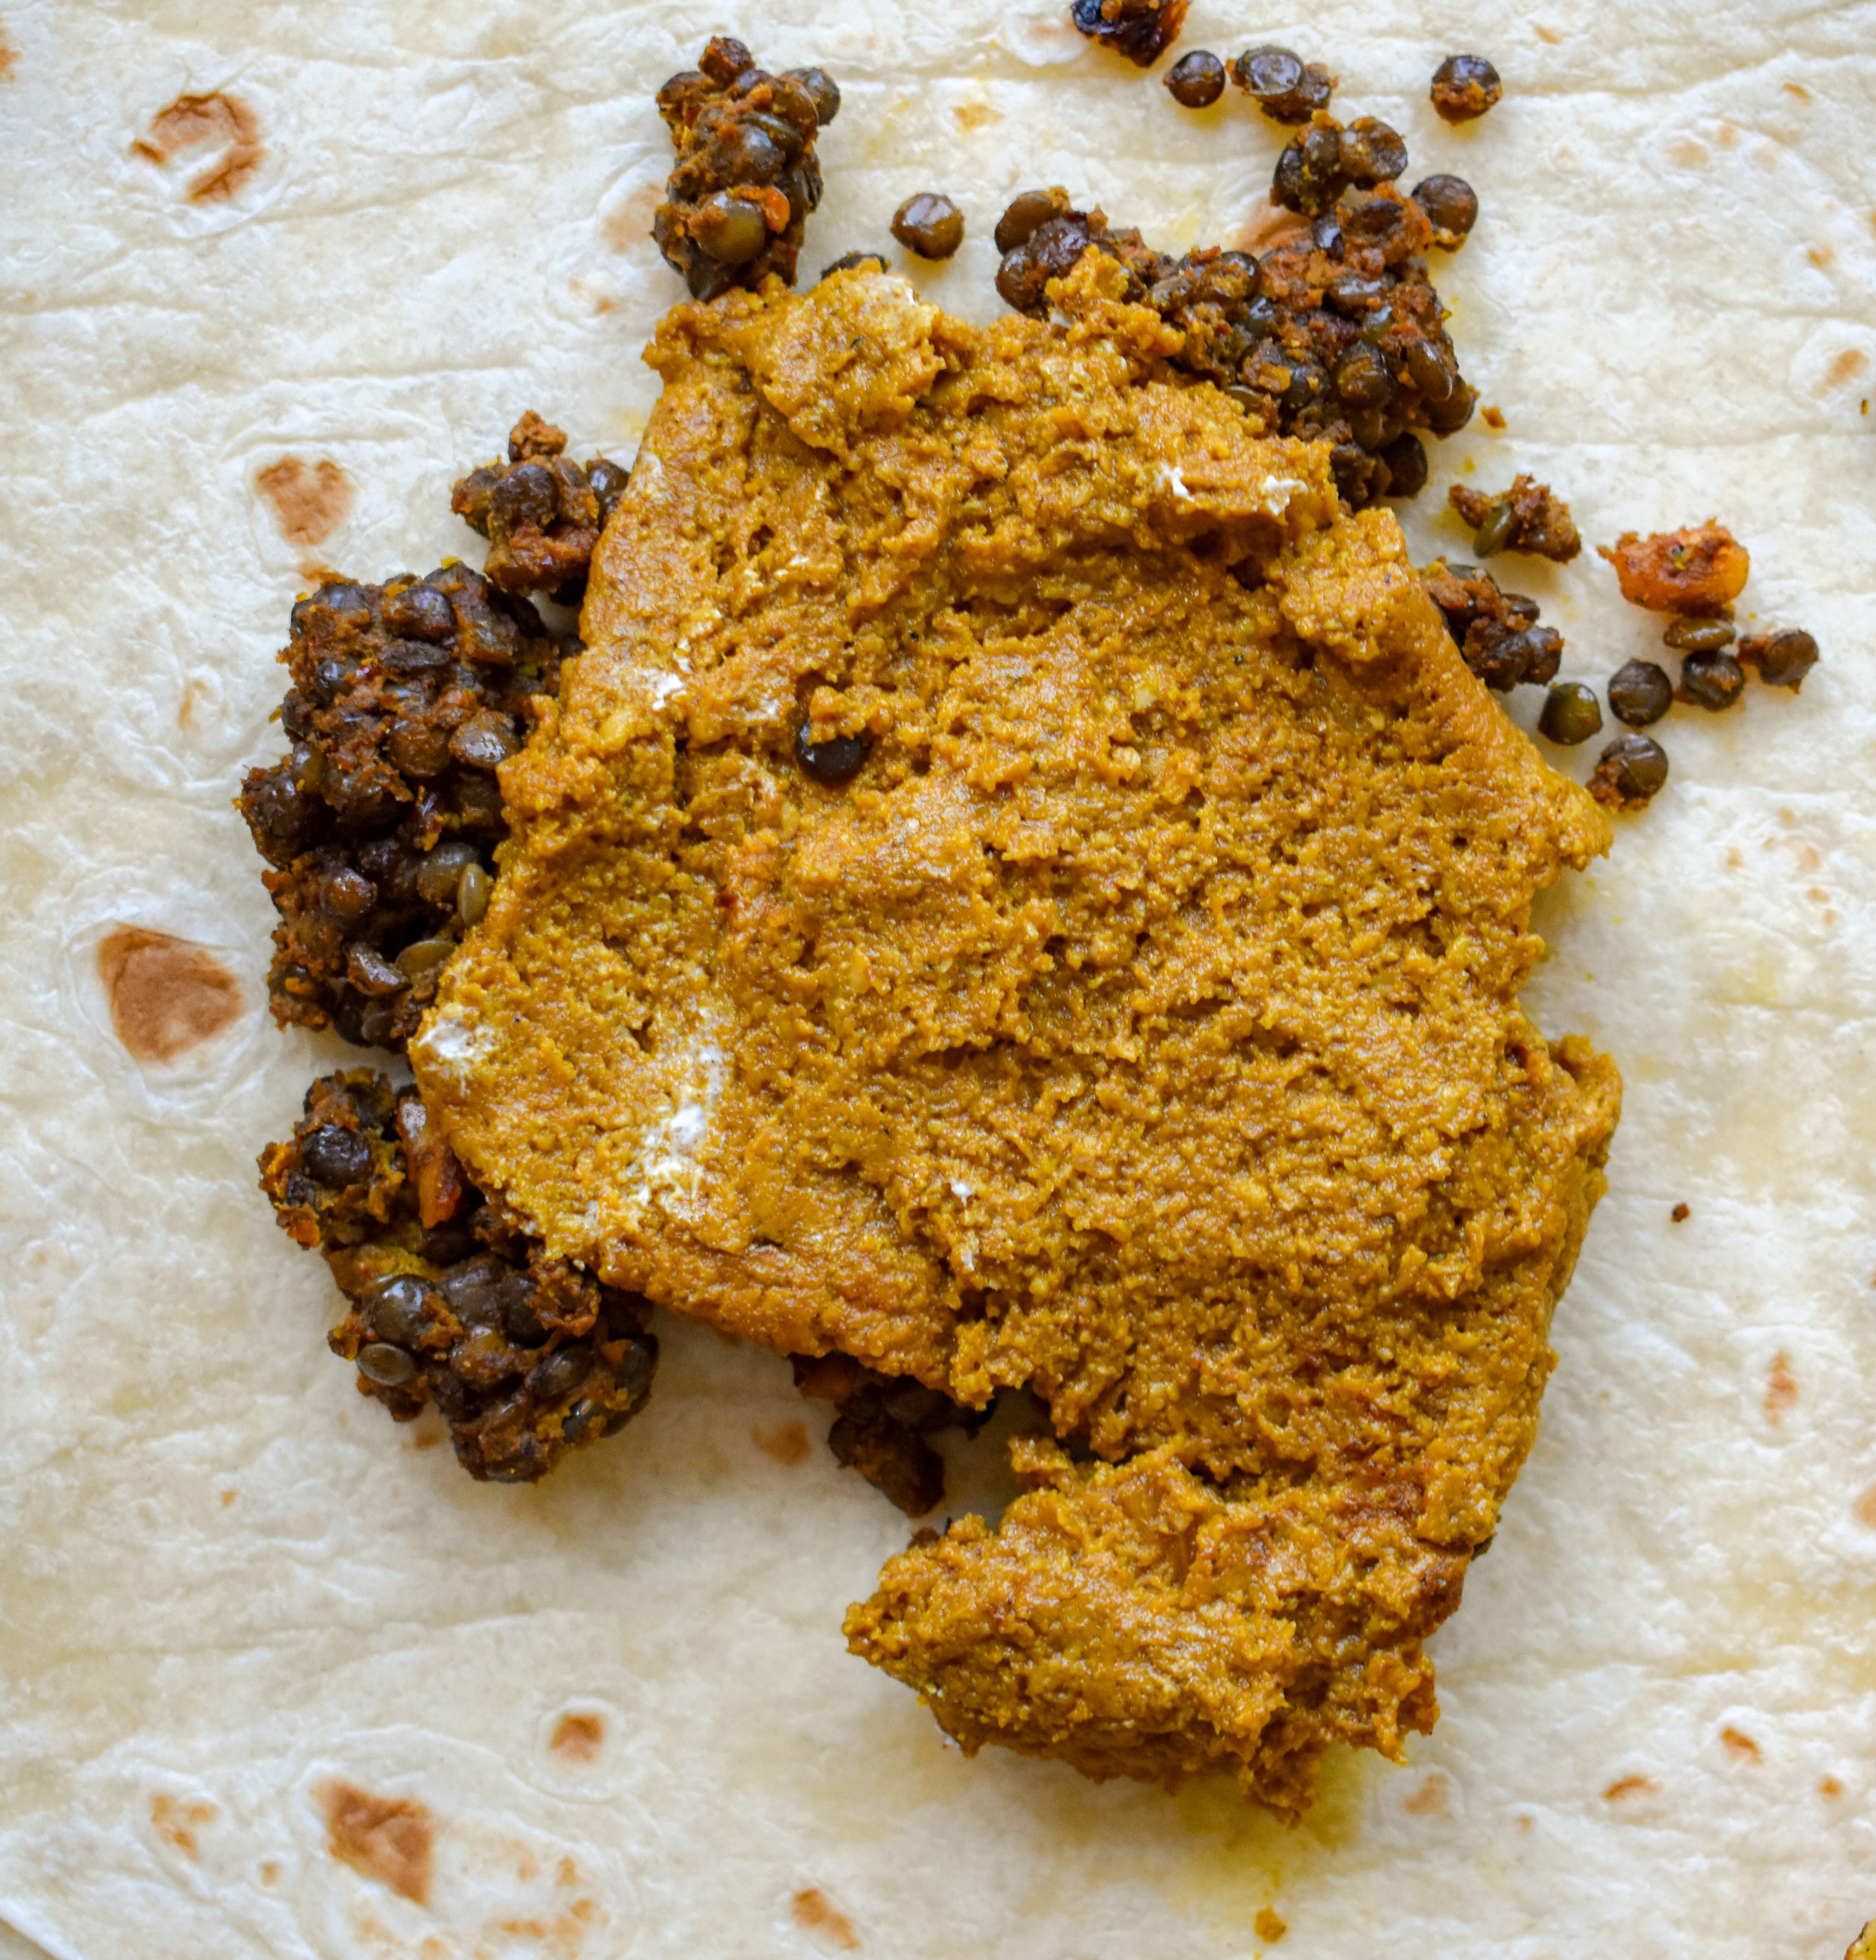 7. To construct, place 1/4 of the lentil meat recipe onto the extra large tortilla and then coat with a 1/2 cup of the cheese.